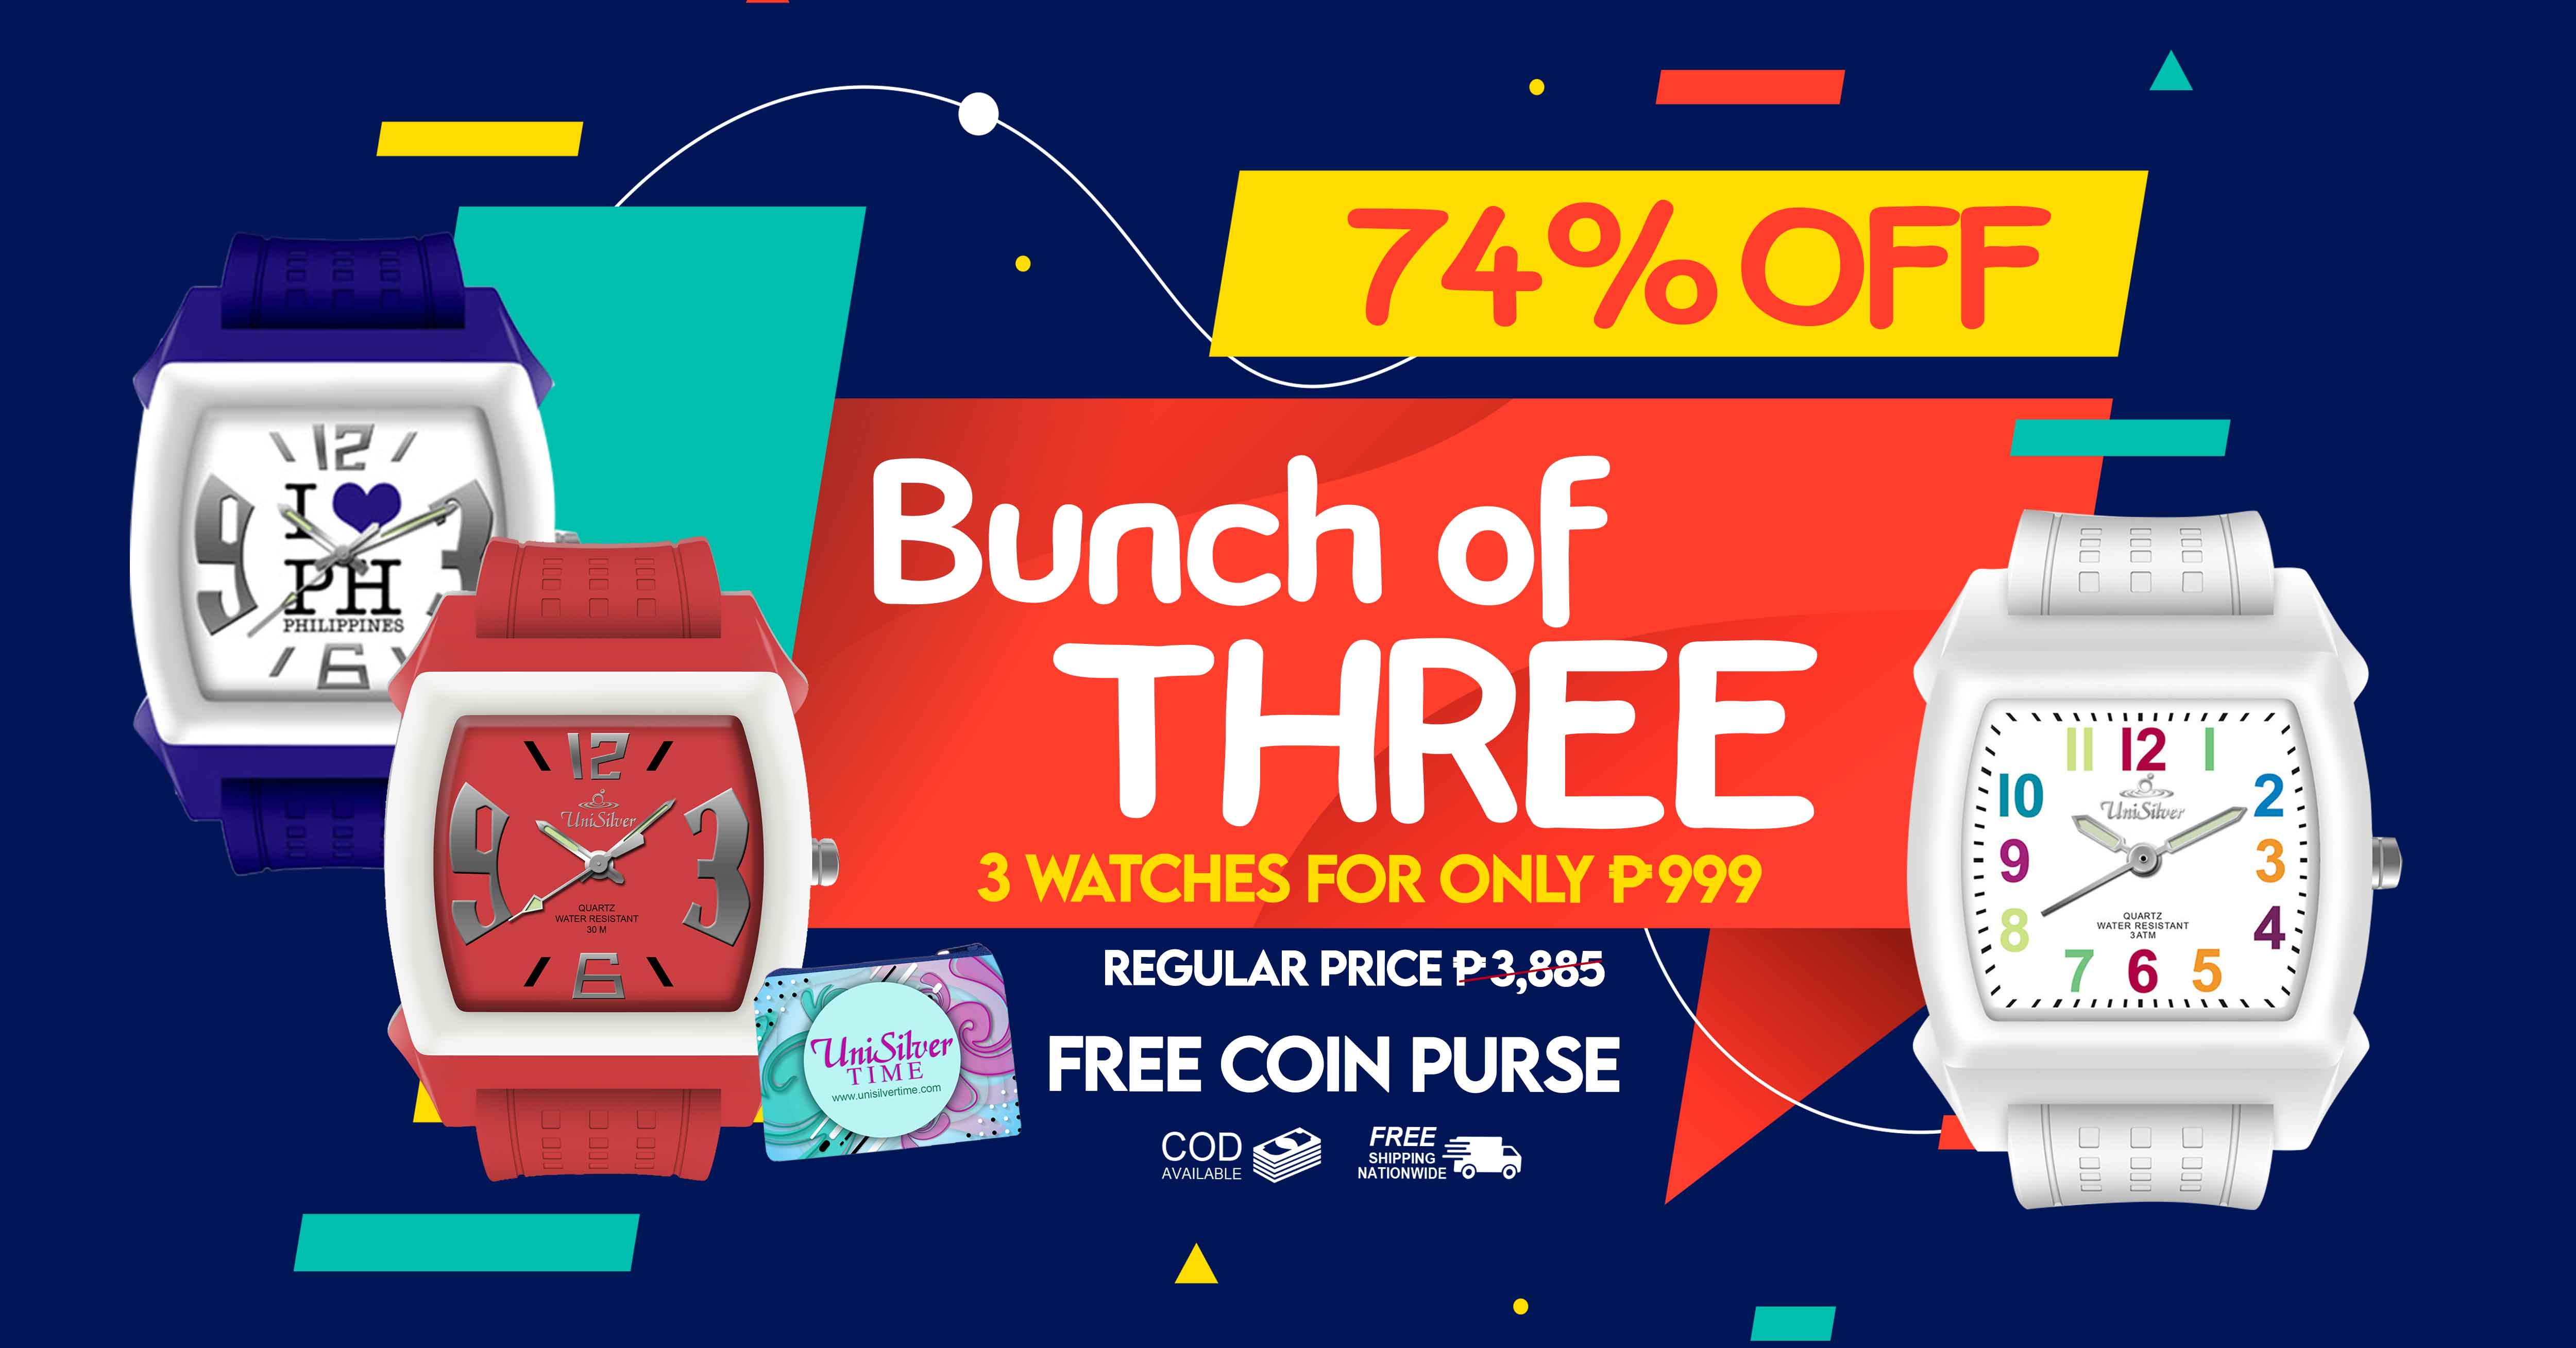 """Check out these bundles of watches: it's the Bunch of 3 Promo from UniSilver TIME!  Just pick any 3 watches for PHP 999 only! That's 74% off from the average regular price of PHP3,885!  Plus you'll also get FREE coin purse  Promo available only online http://www.unisilvertime.com/  Free shipping nationwide and COD option is available.